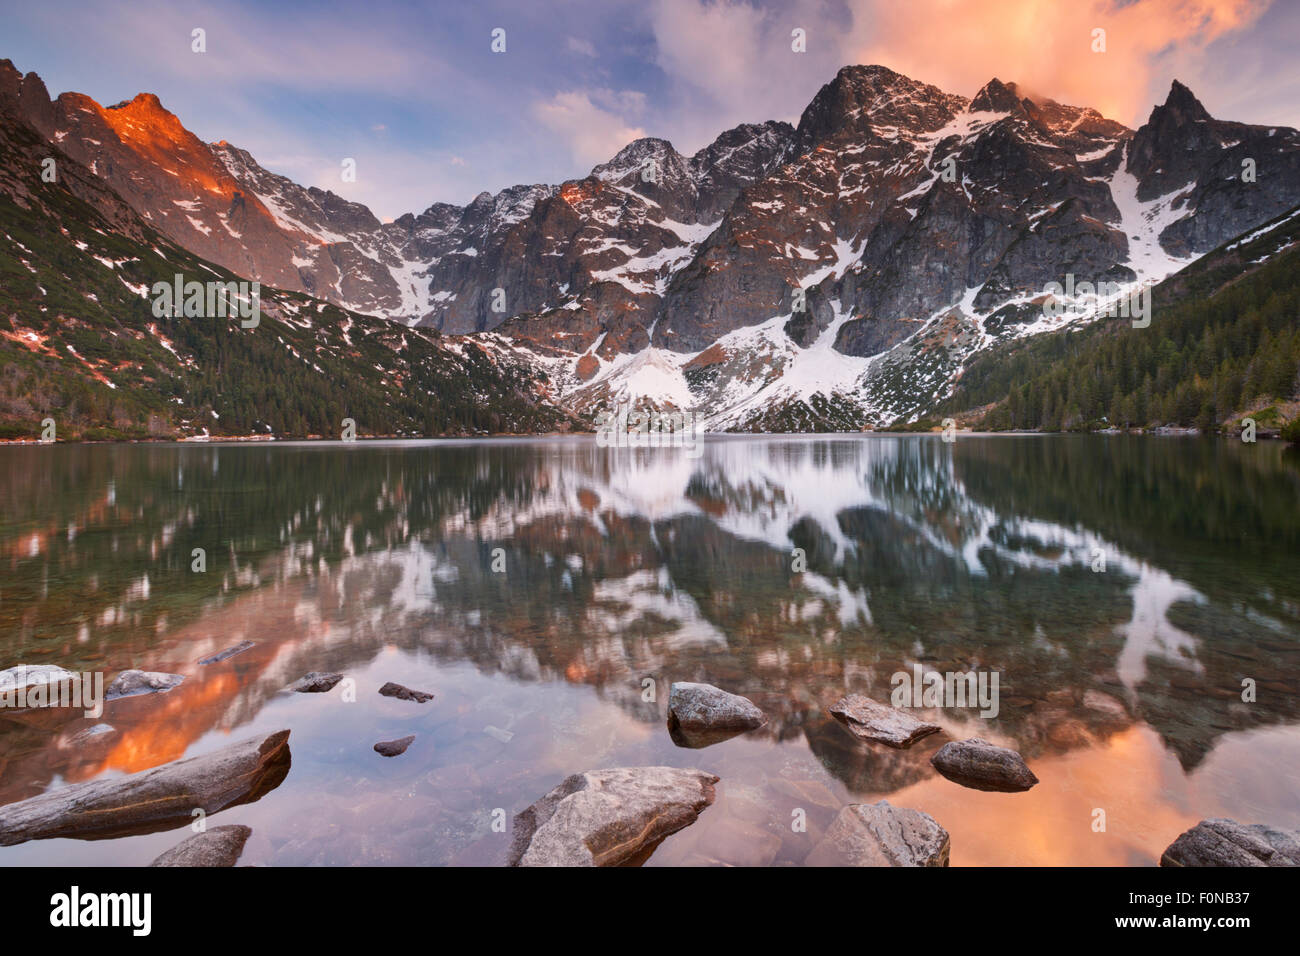 The Morskie Oko mountain lake in the Tatra Mountains in Poland, photographed at sunset. Stock Photo